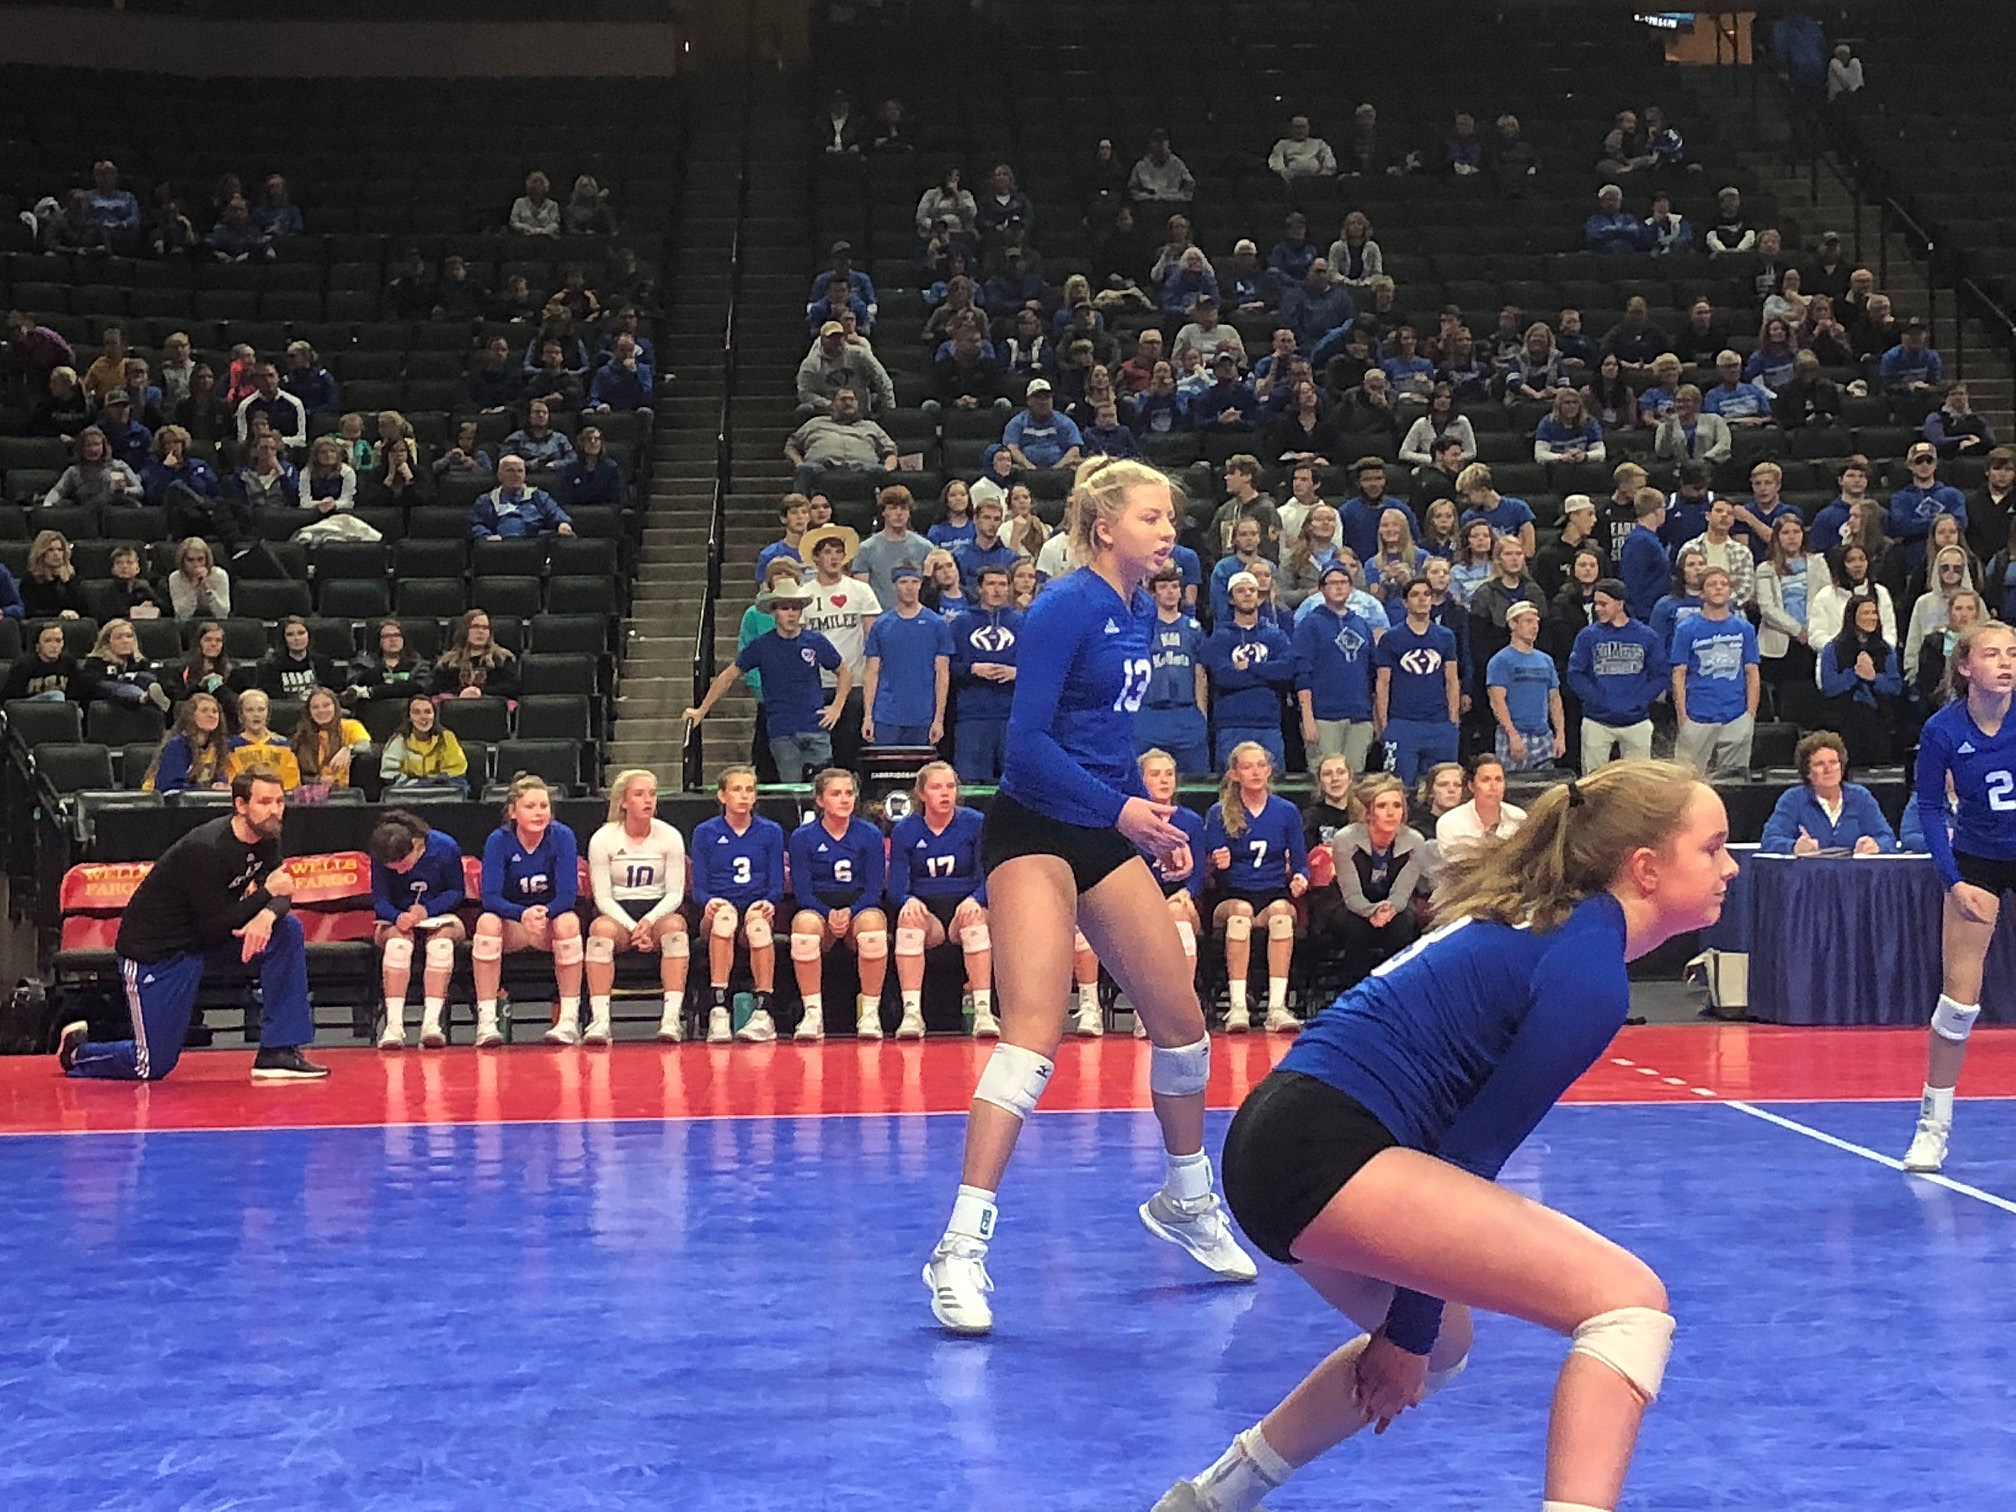 Kasson-Mantorville Volleyball Looks Focused in State Opener | The Rock of Rochester